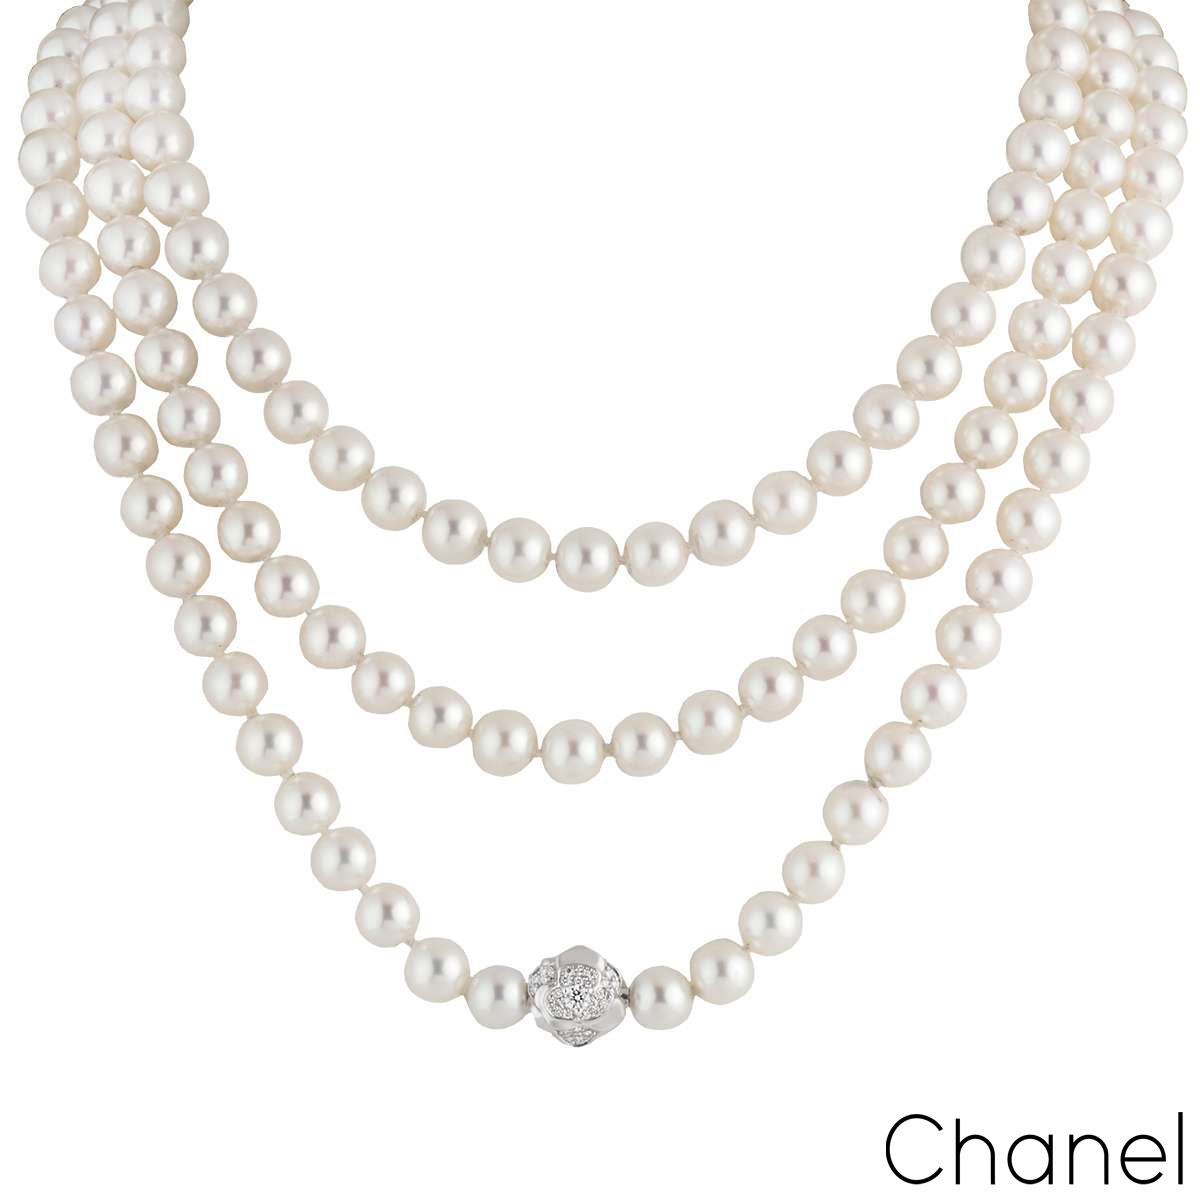 Chanel 18k White Gold Diamond and Pearl Necklace